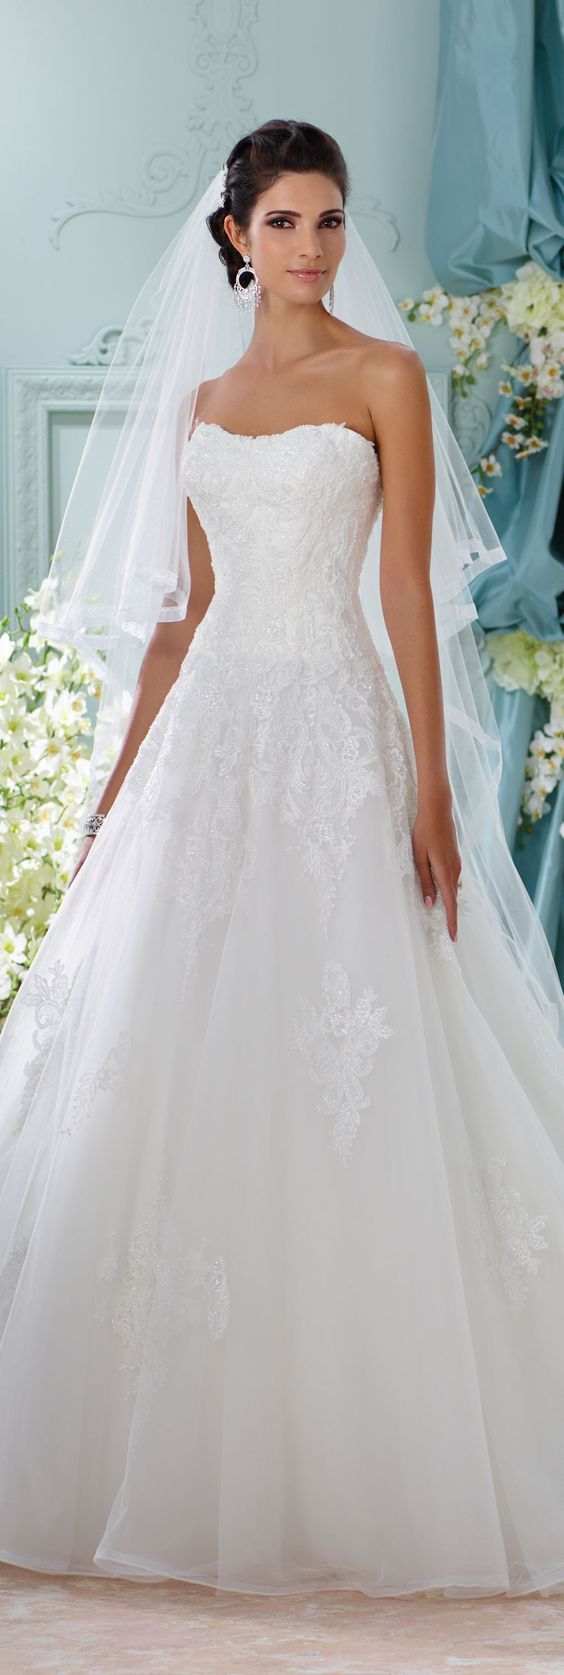 146 best Sissy bridal Dream and Desire images on Pinterest | Gown ...